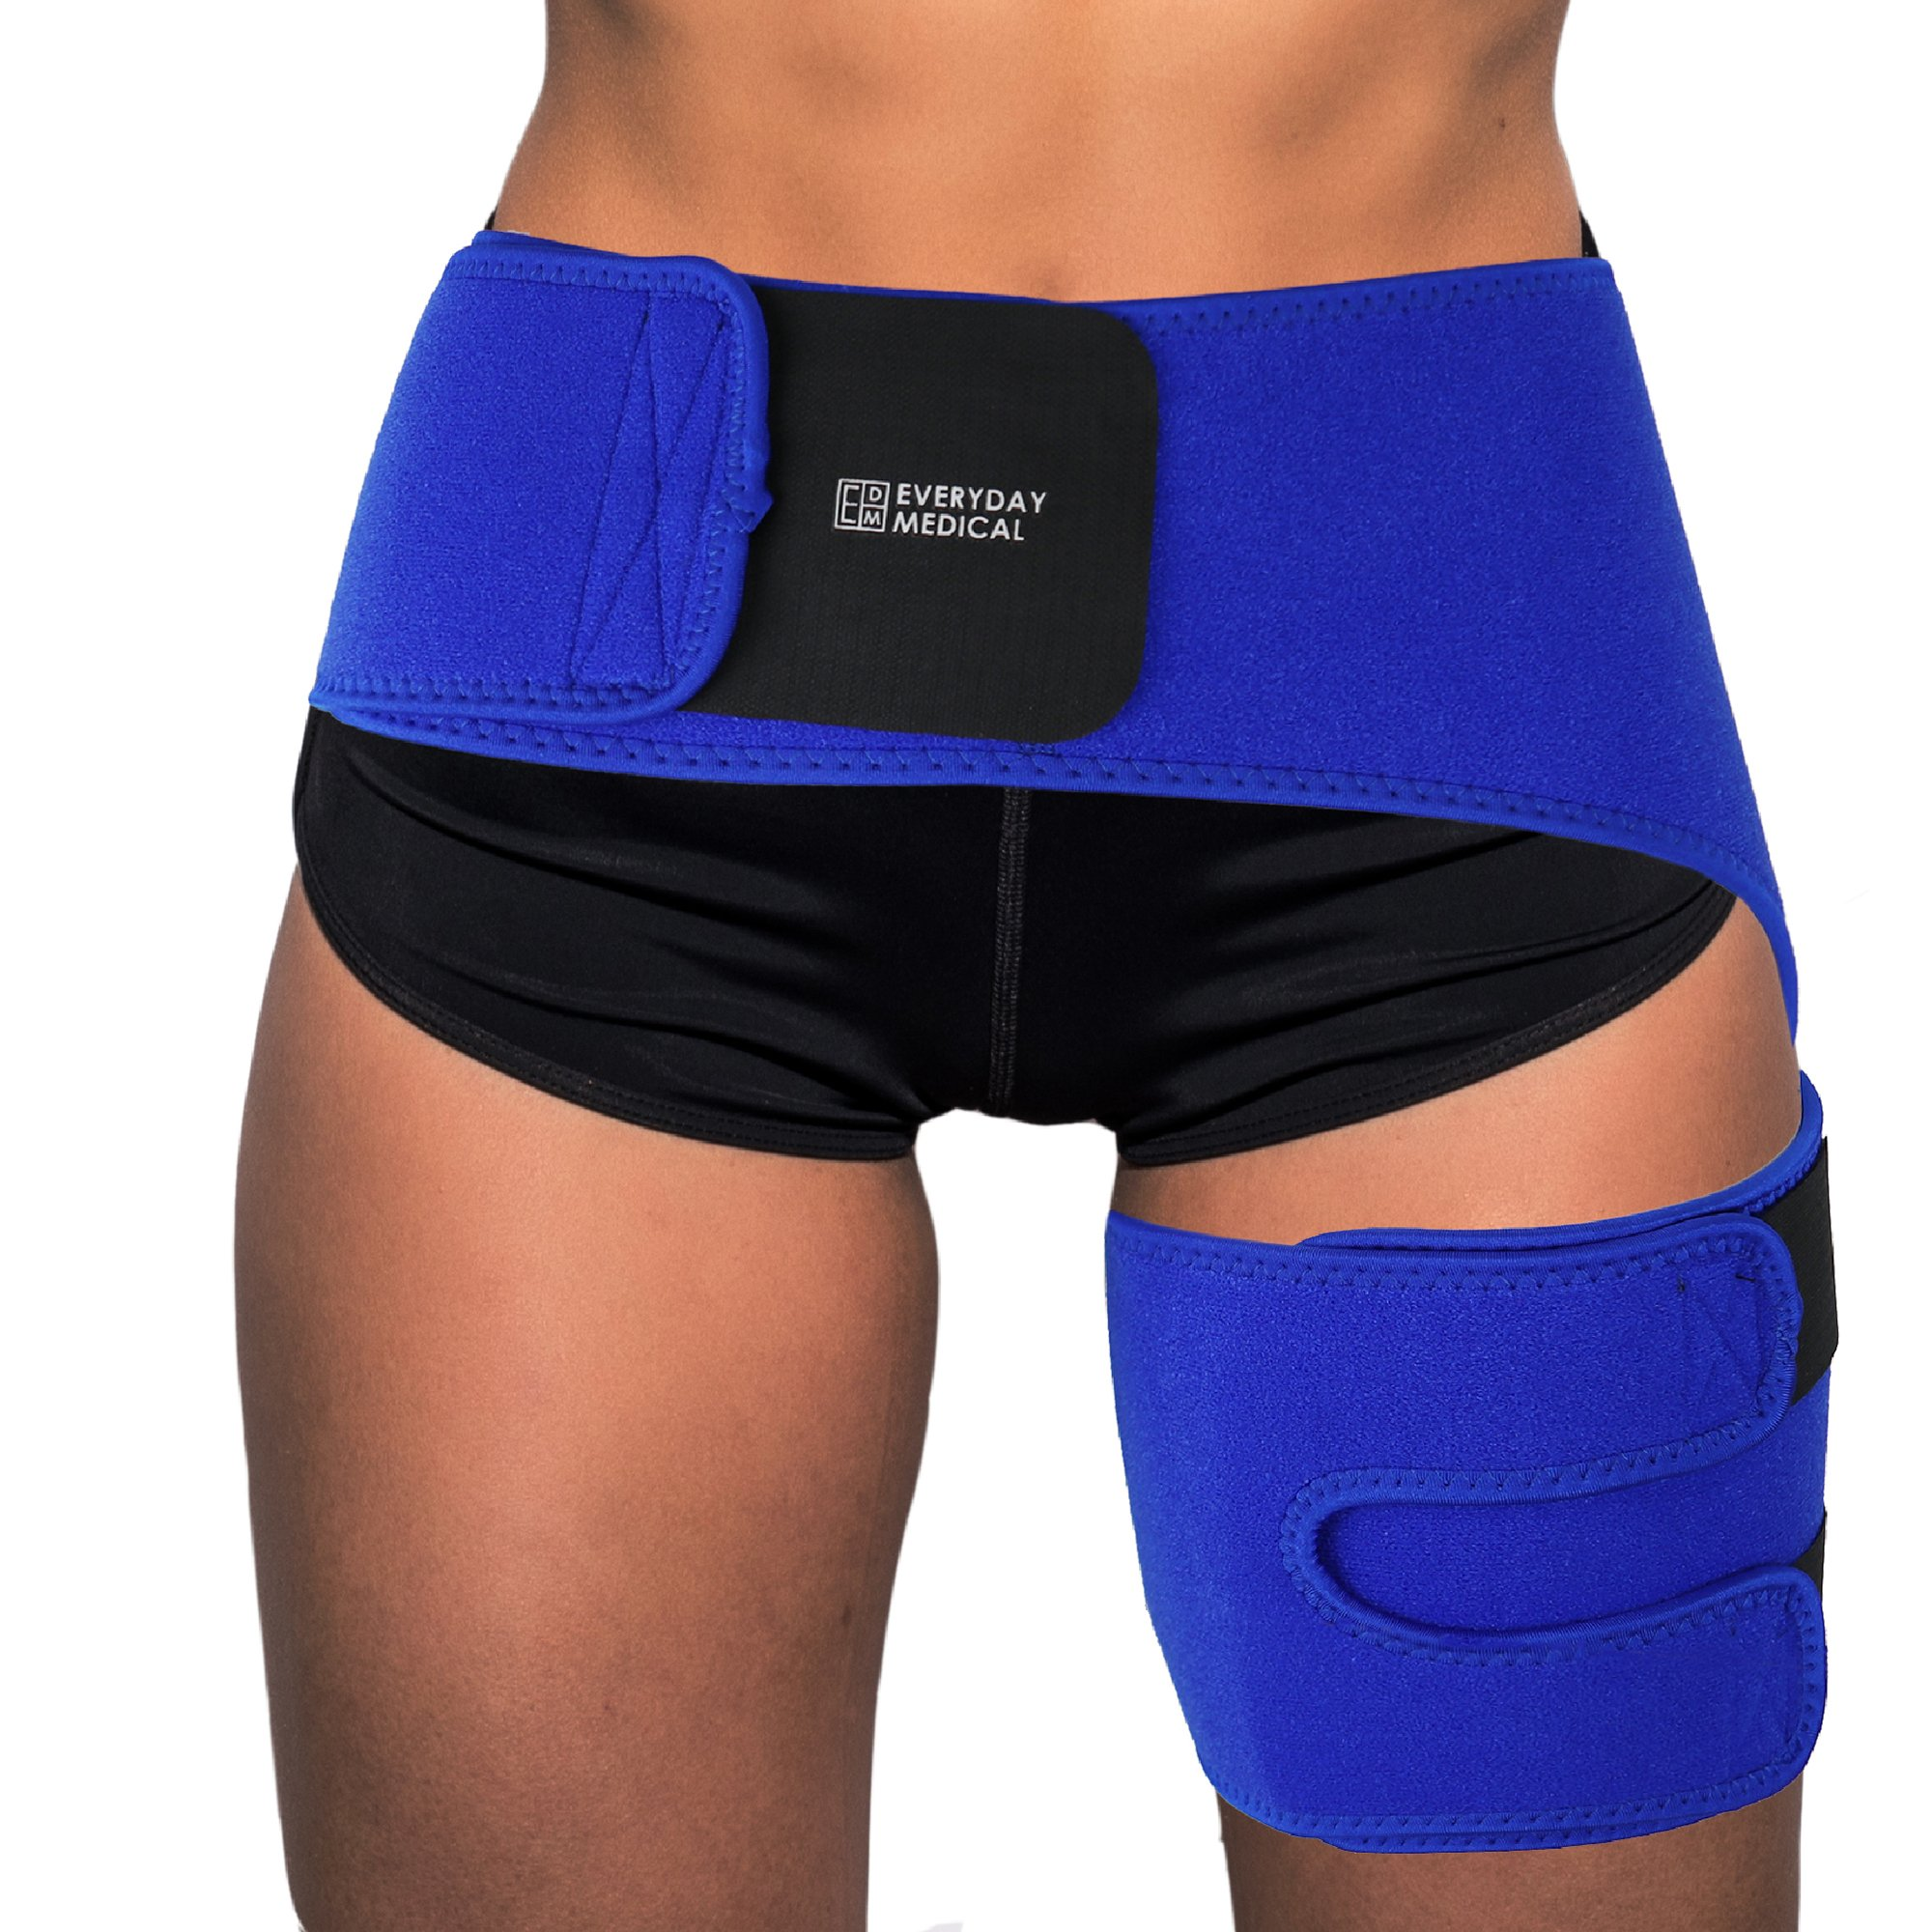 Everyday Medical Groin Compression Wrap for Relief of Hip Pain, Hip Injury, Hip Arthritis, Pulled Hip Flexor/Groin/Hamstring & More - Hernia & Si Joint Belt Brace for Men and Women